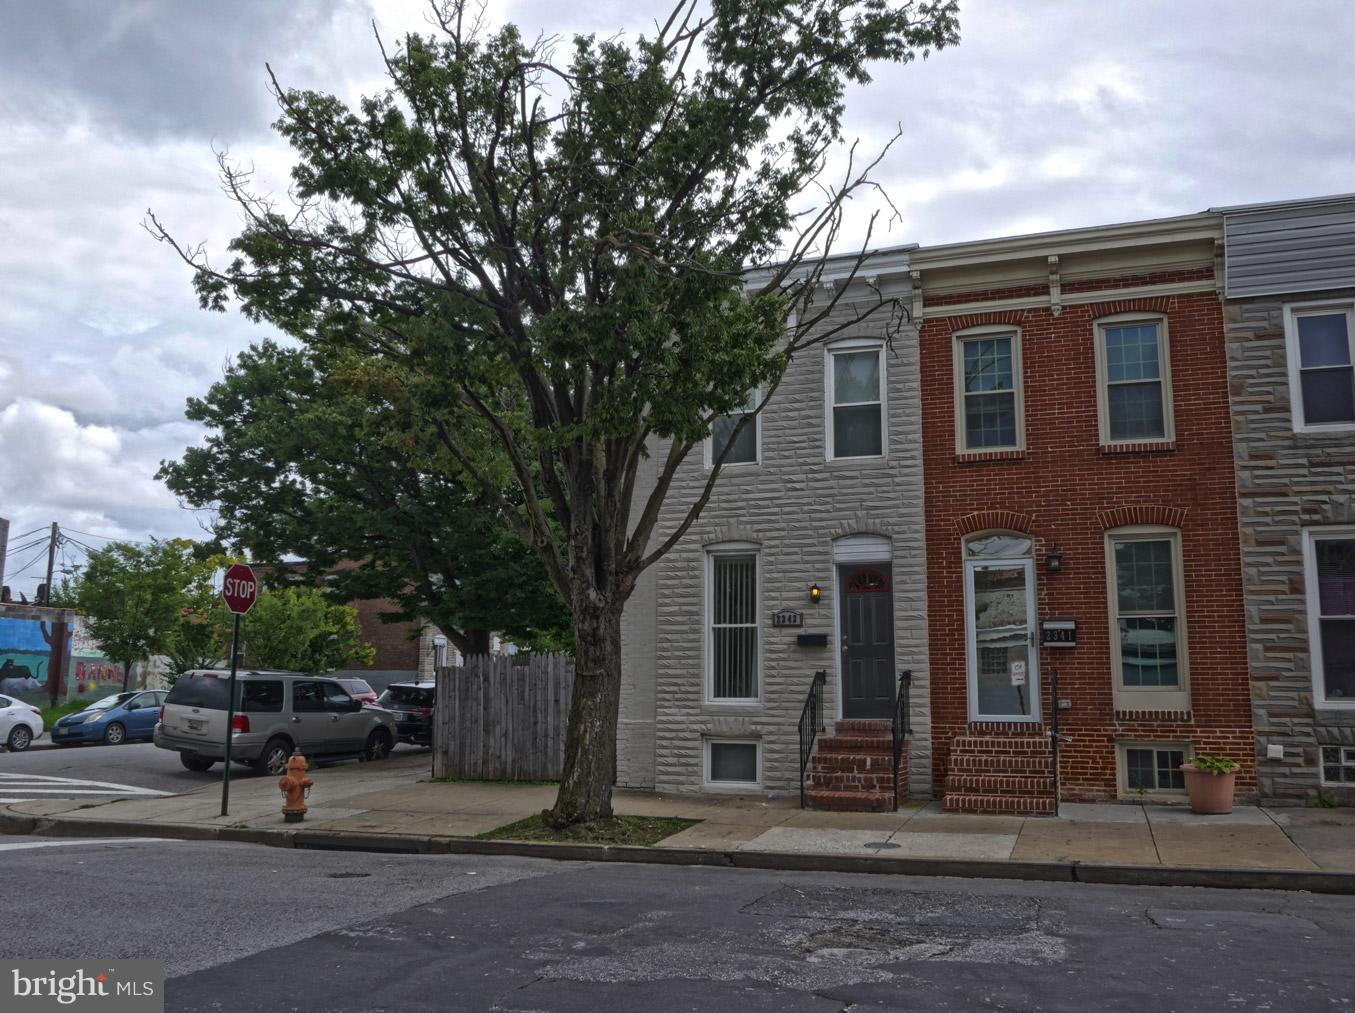 2343 MCELDERRY STREET, BALTIMORE, MD 21205